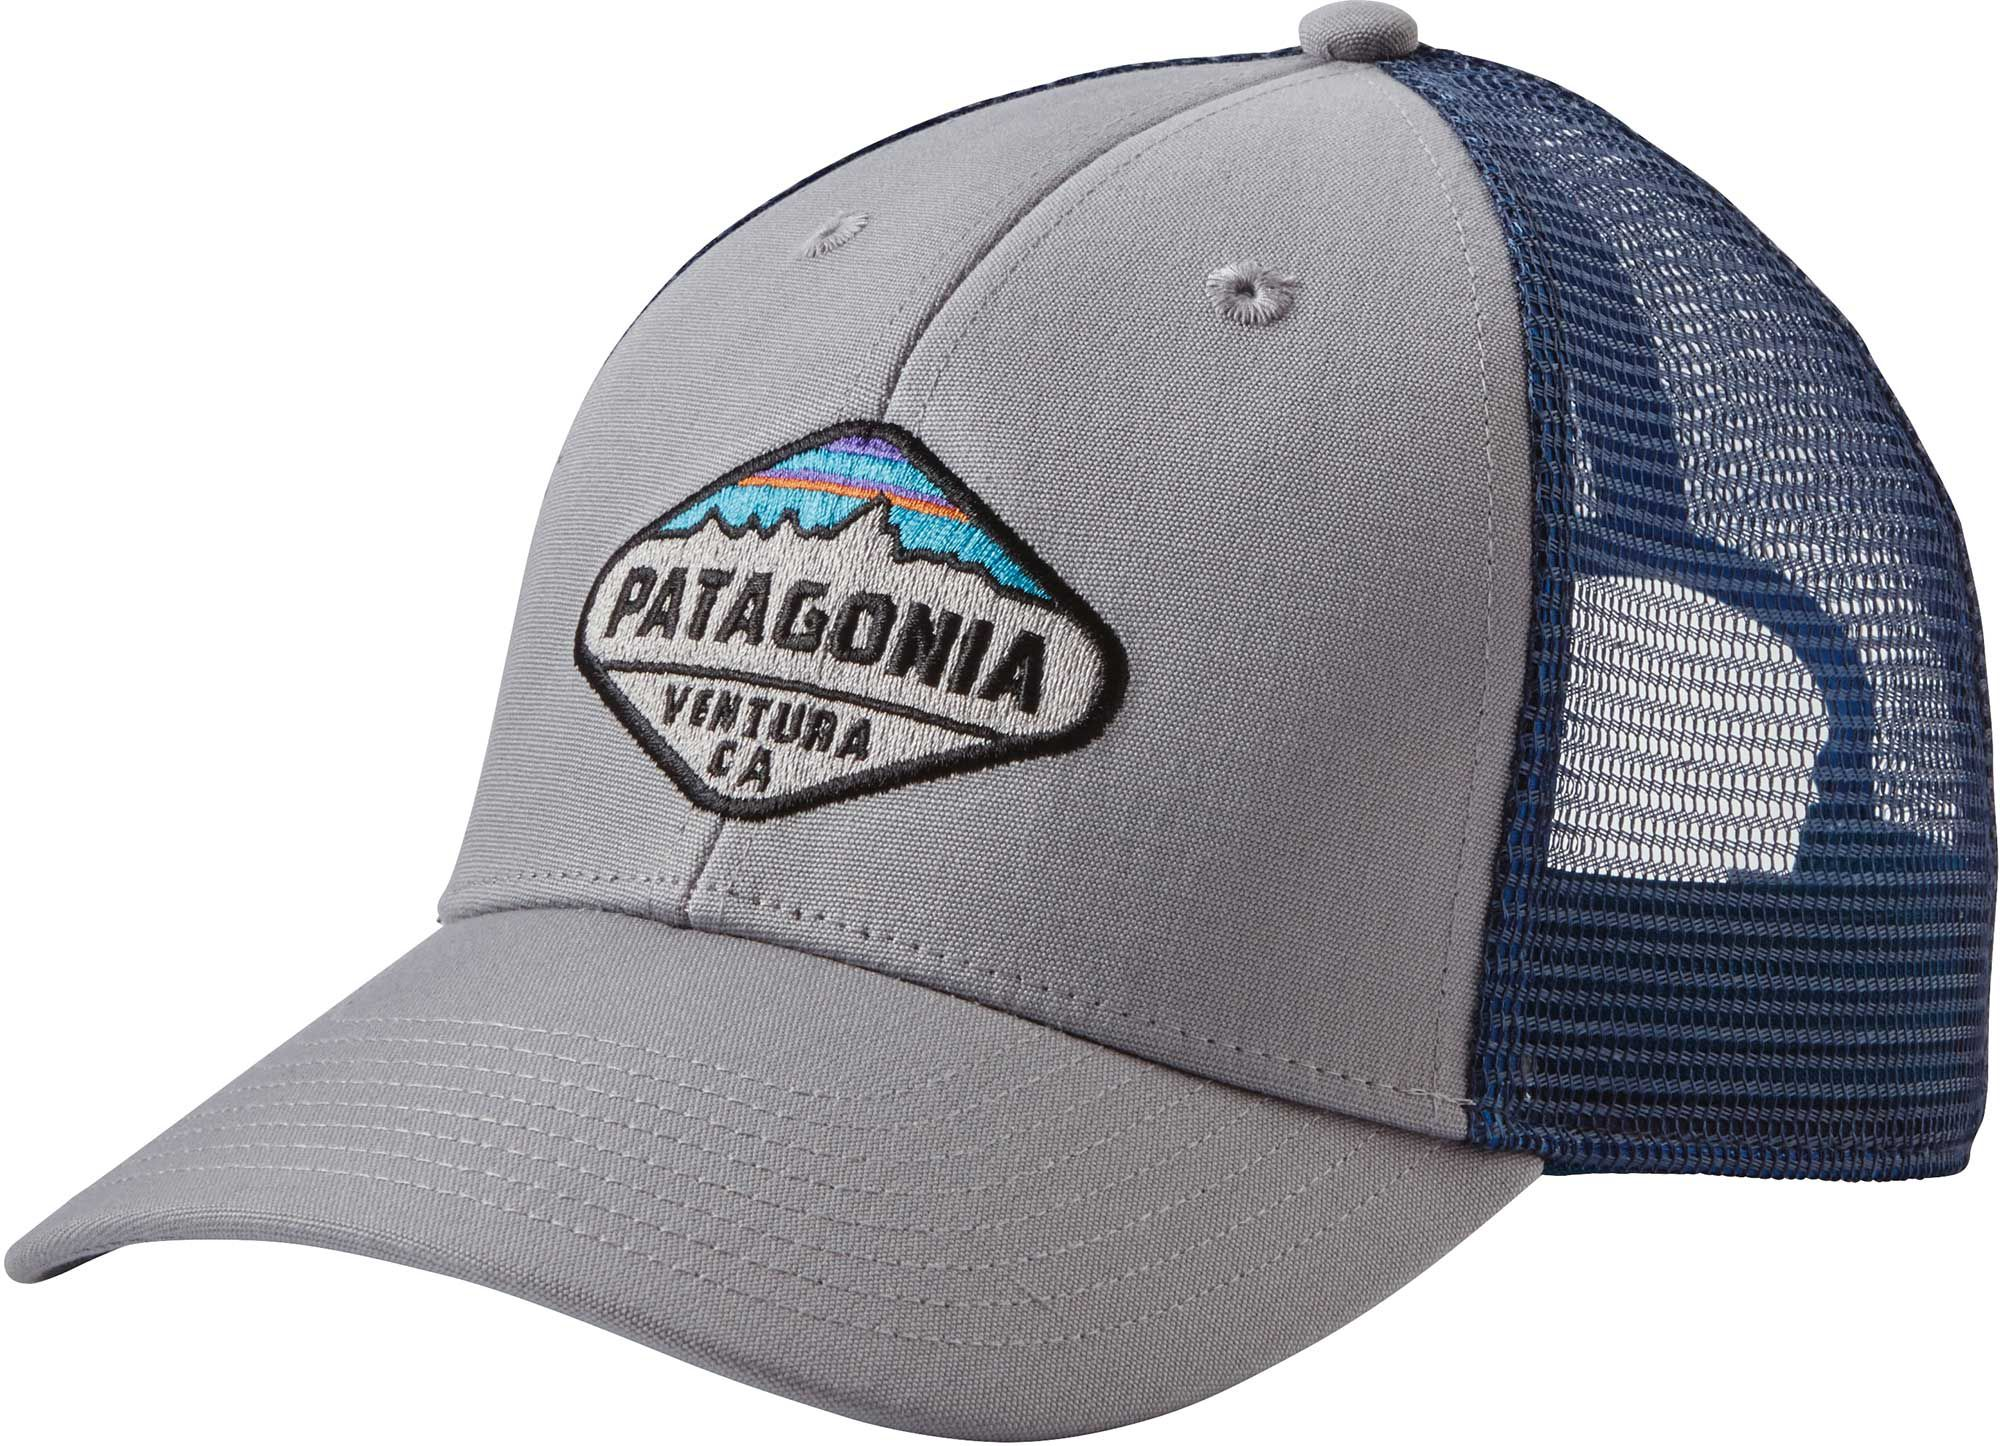 Patagonia Mens Fitz Roy Crest Lopro Trucker Hat DICKS Sporting Goods